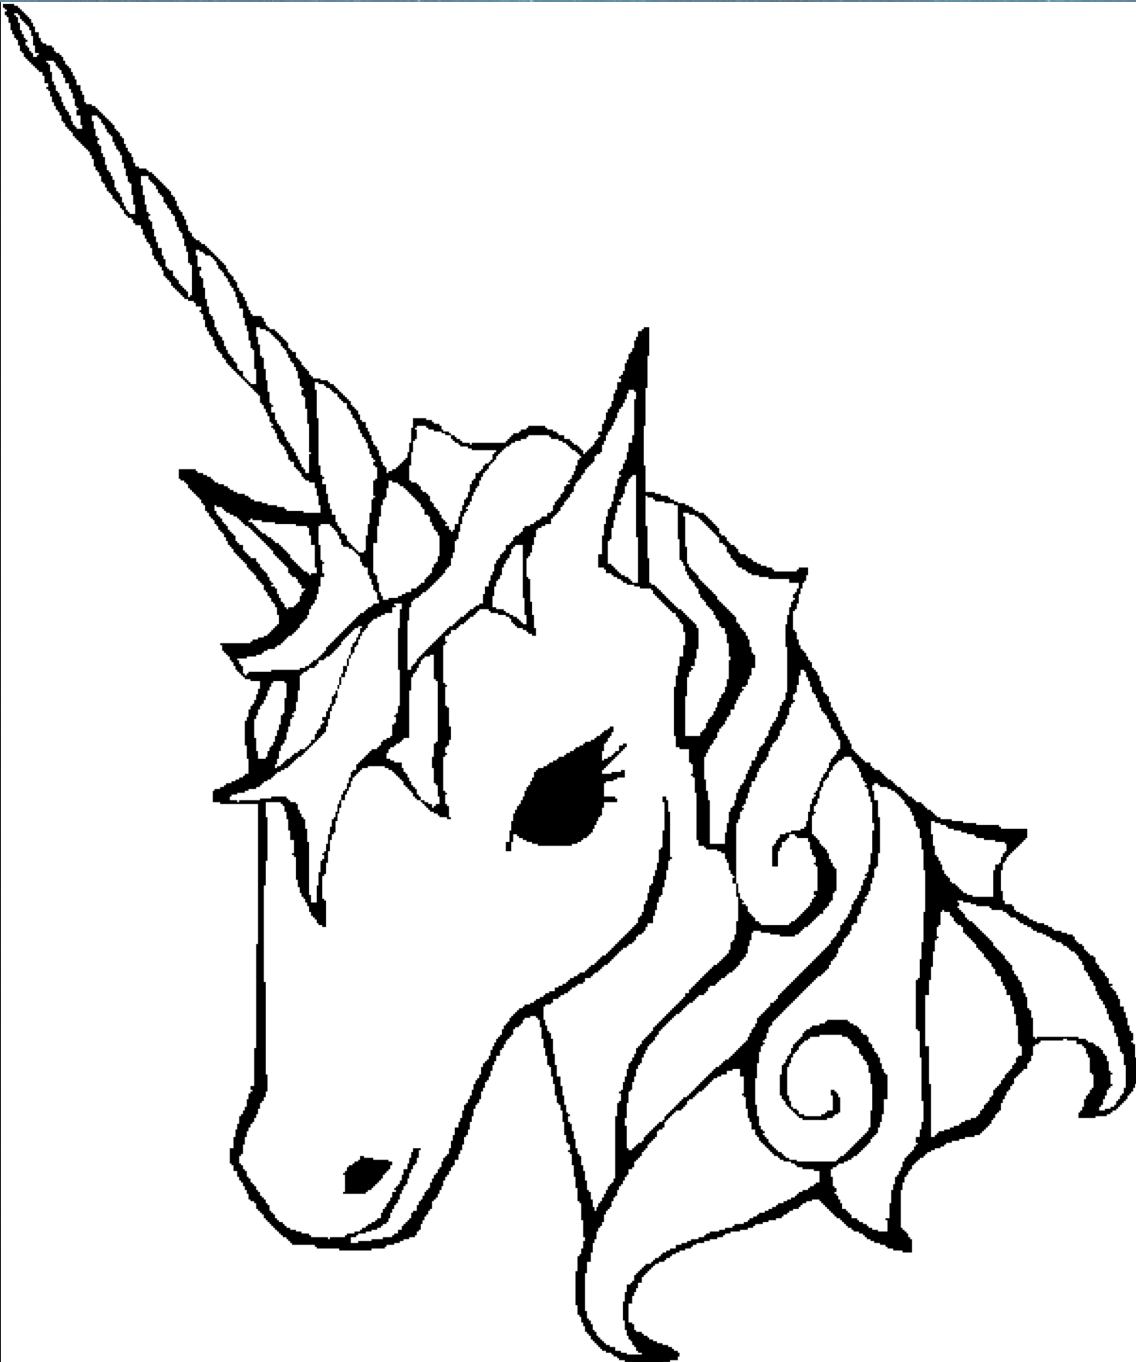 Unicorn Coloring Pages Adults Unicorn Pictures To Color Unicorn Coloring Pages Unicorn Pictures